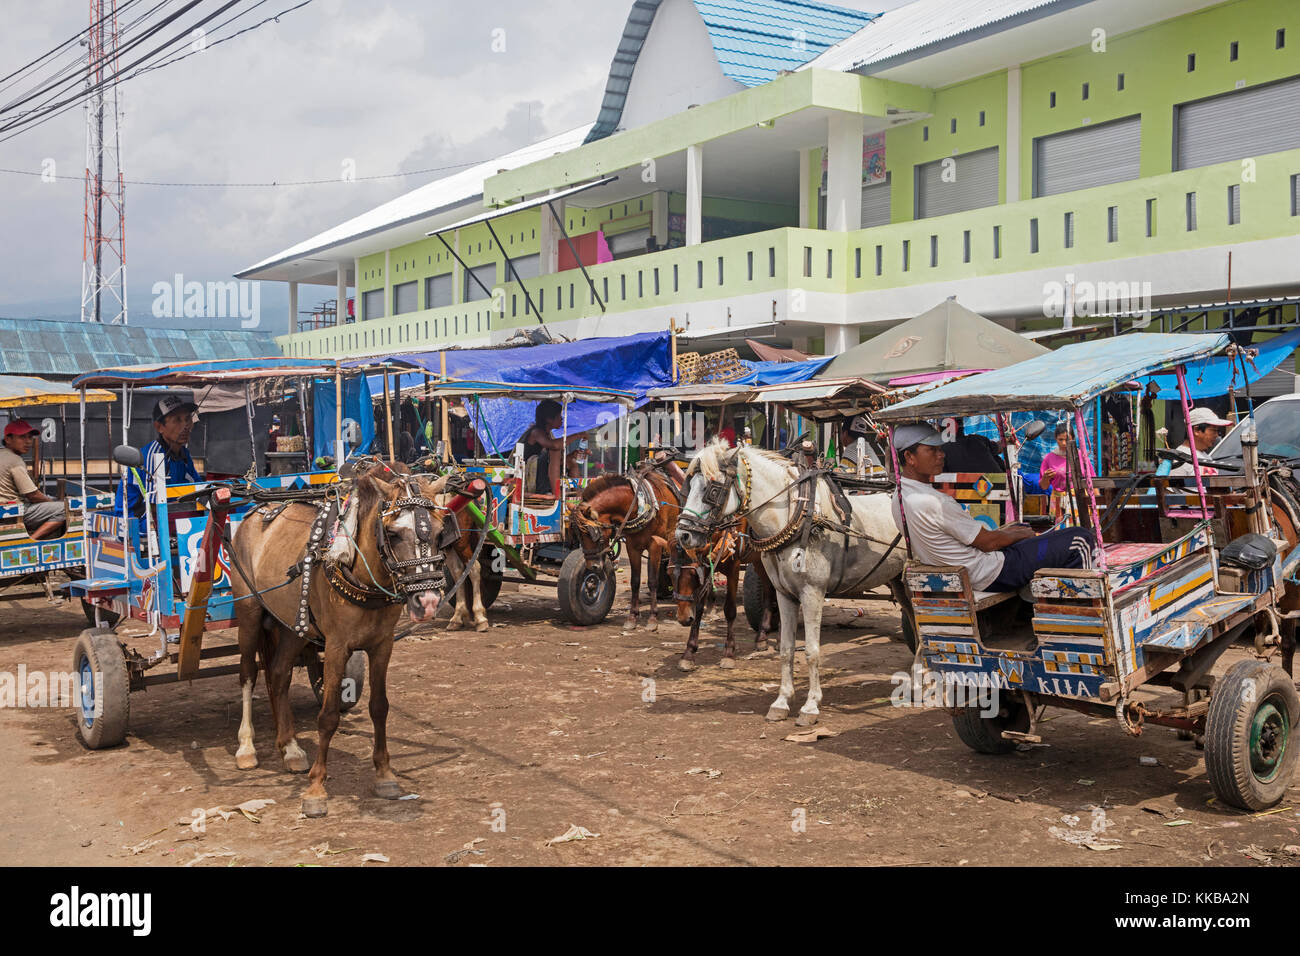 Horse-drawn carriages / cidomos for public transport in the town Labuhan Lombok / Tanjung Kayangan on the island - Stock Image